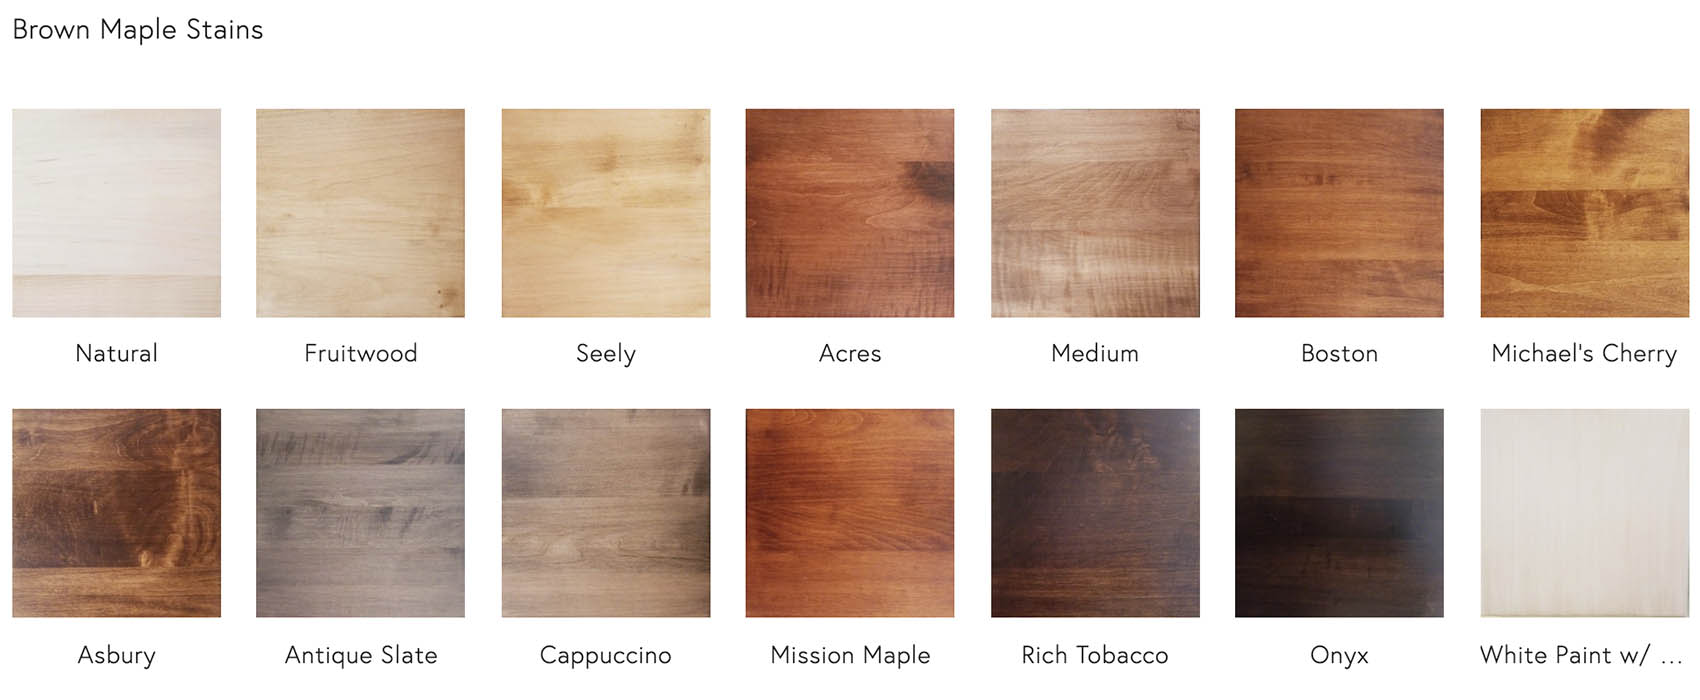 Brown Maple Stains